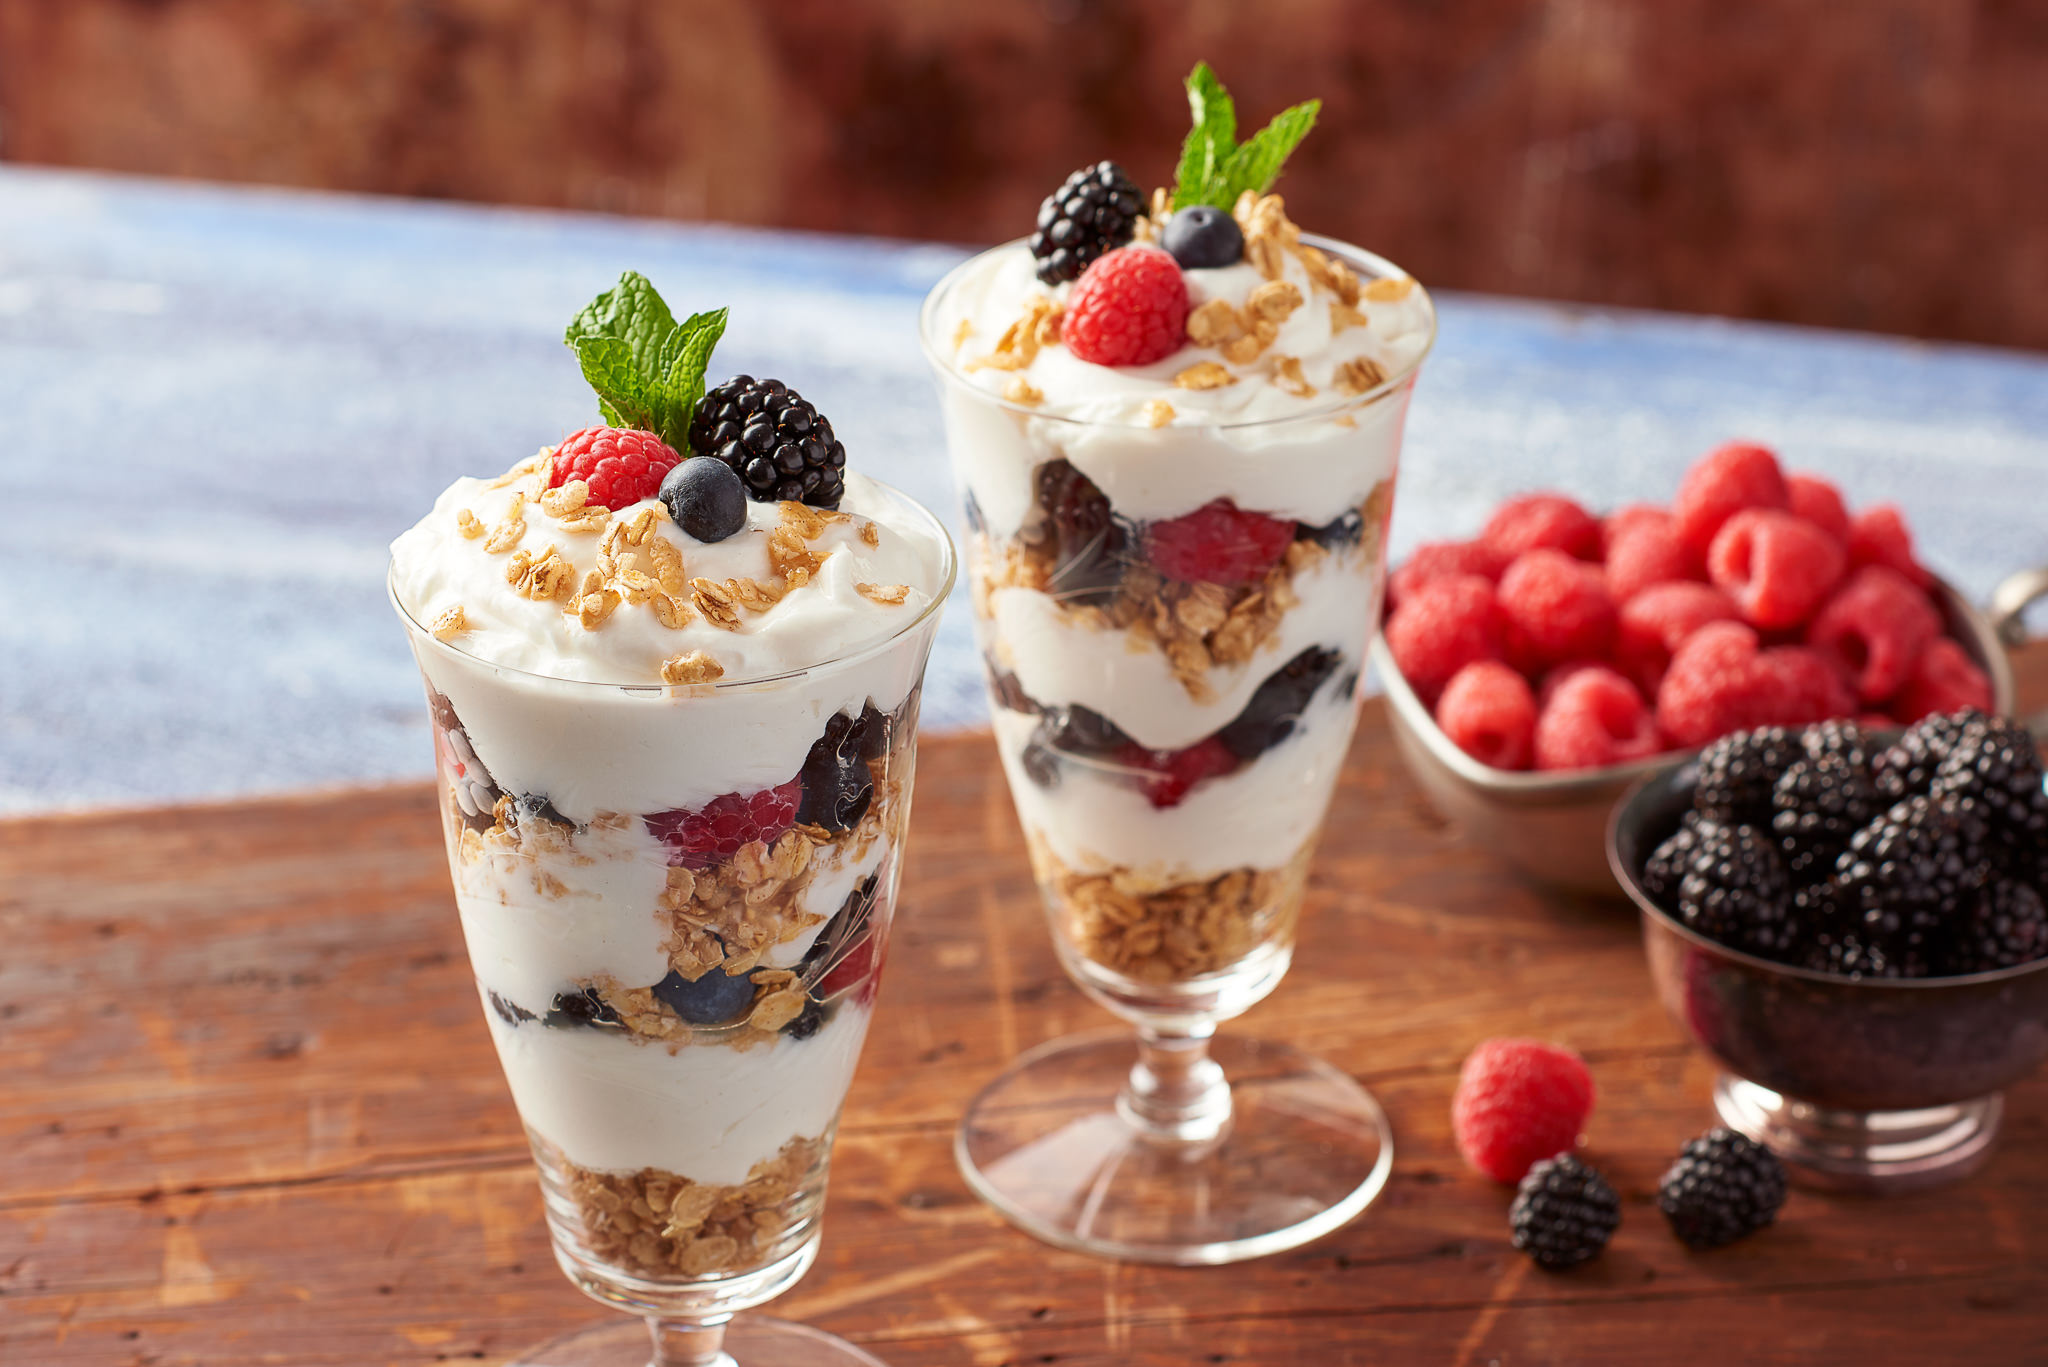 Raspberry Blueberry Yogurt Parfait Food Photography for Publix Supermarkets Photography by Nick Pecori Tampa Commercial Advertising Photographer-9.jpg